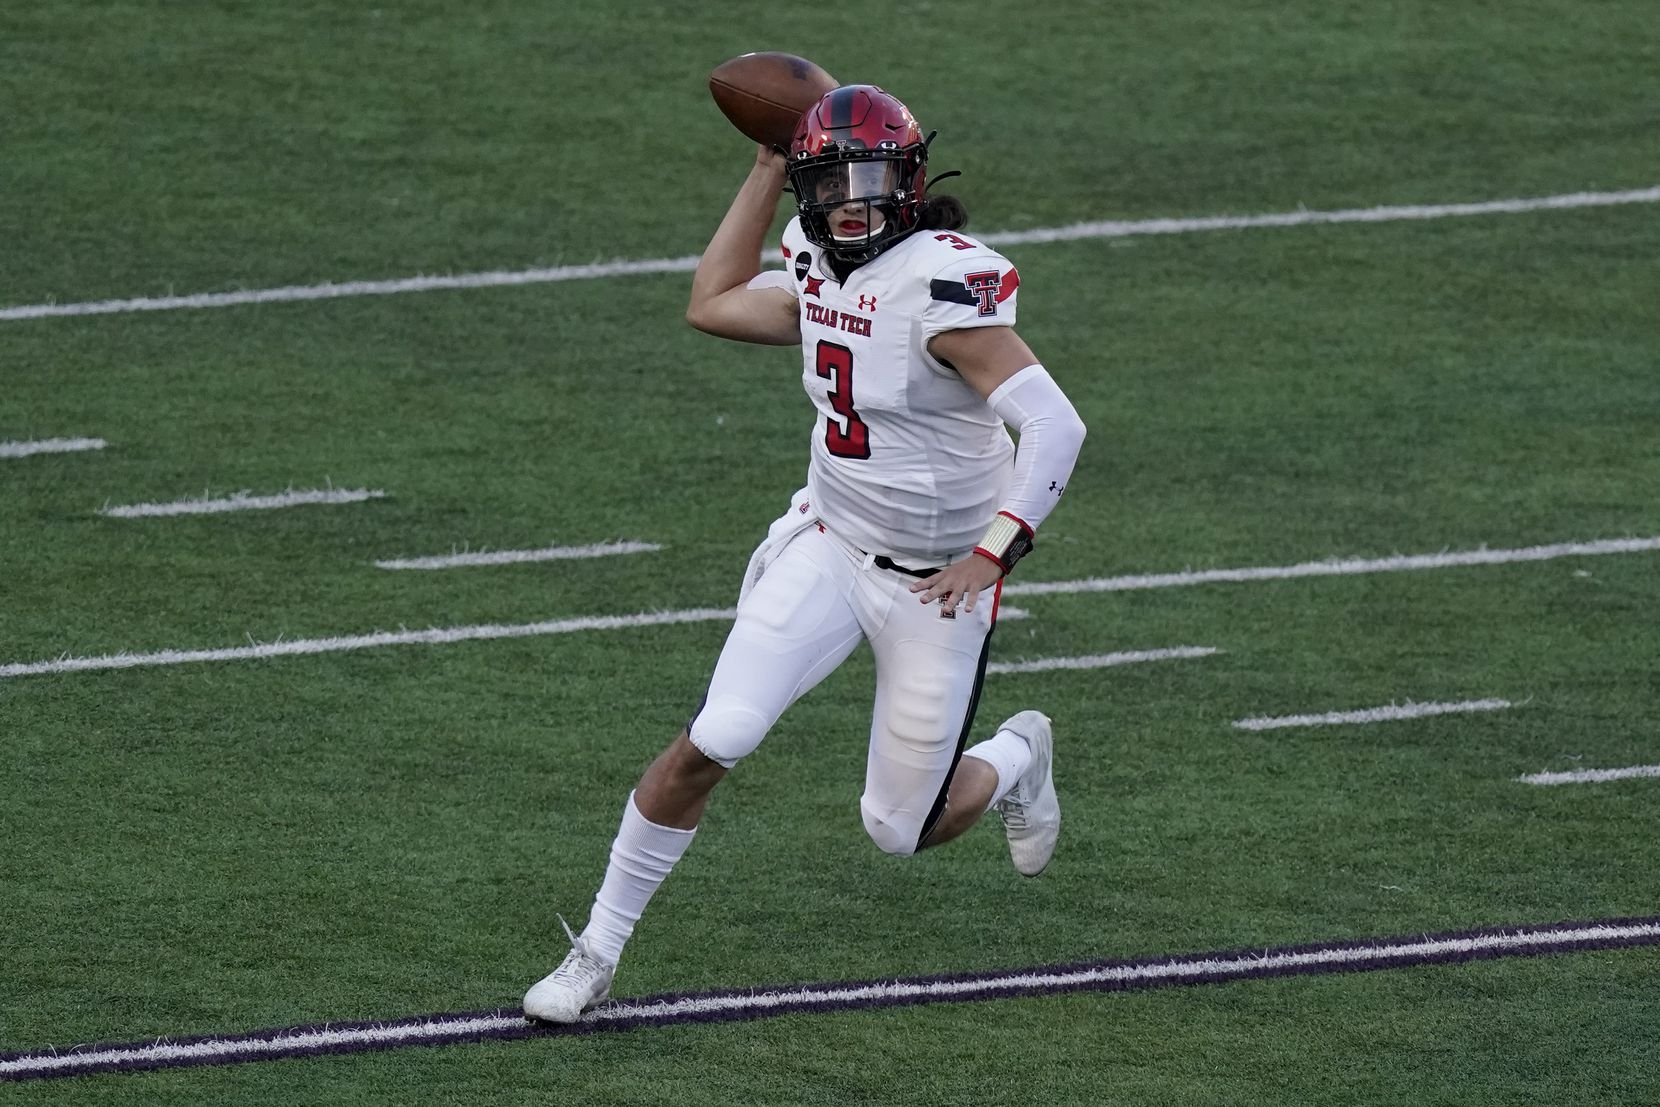 Texas Tech quarterback Henry Colombi looks to throw the ball during the second half of an NCAA college football game against Kansas State Saturday, Oct. 3, 2020, in Manhattan, Kan. Kansas State won 31-21.